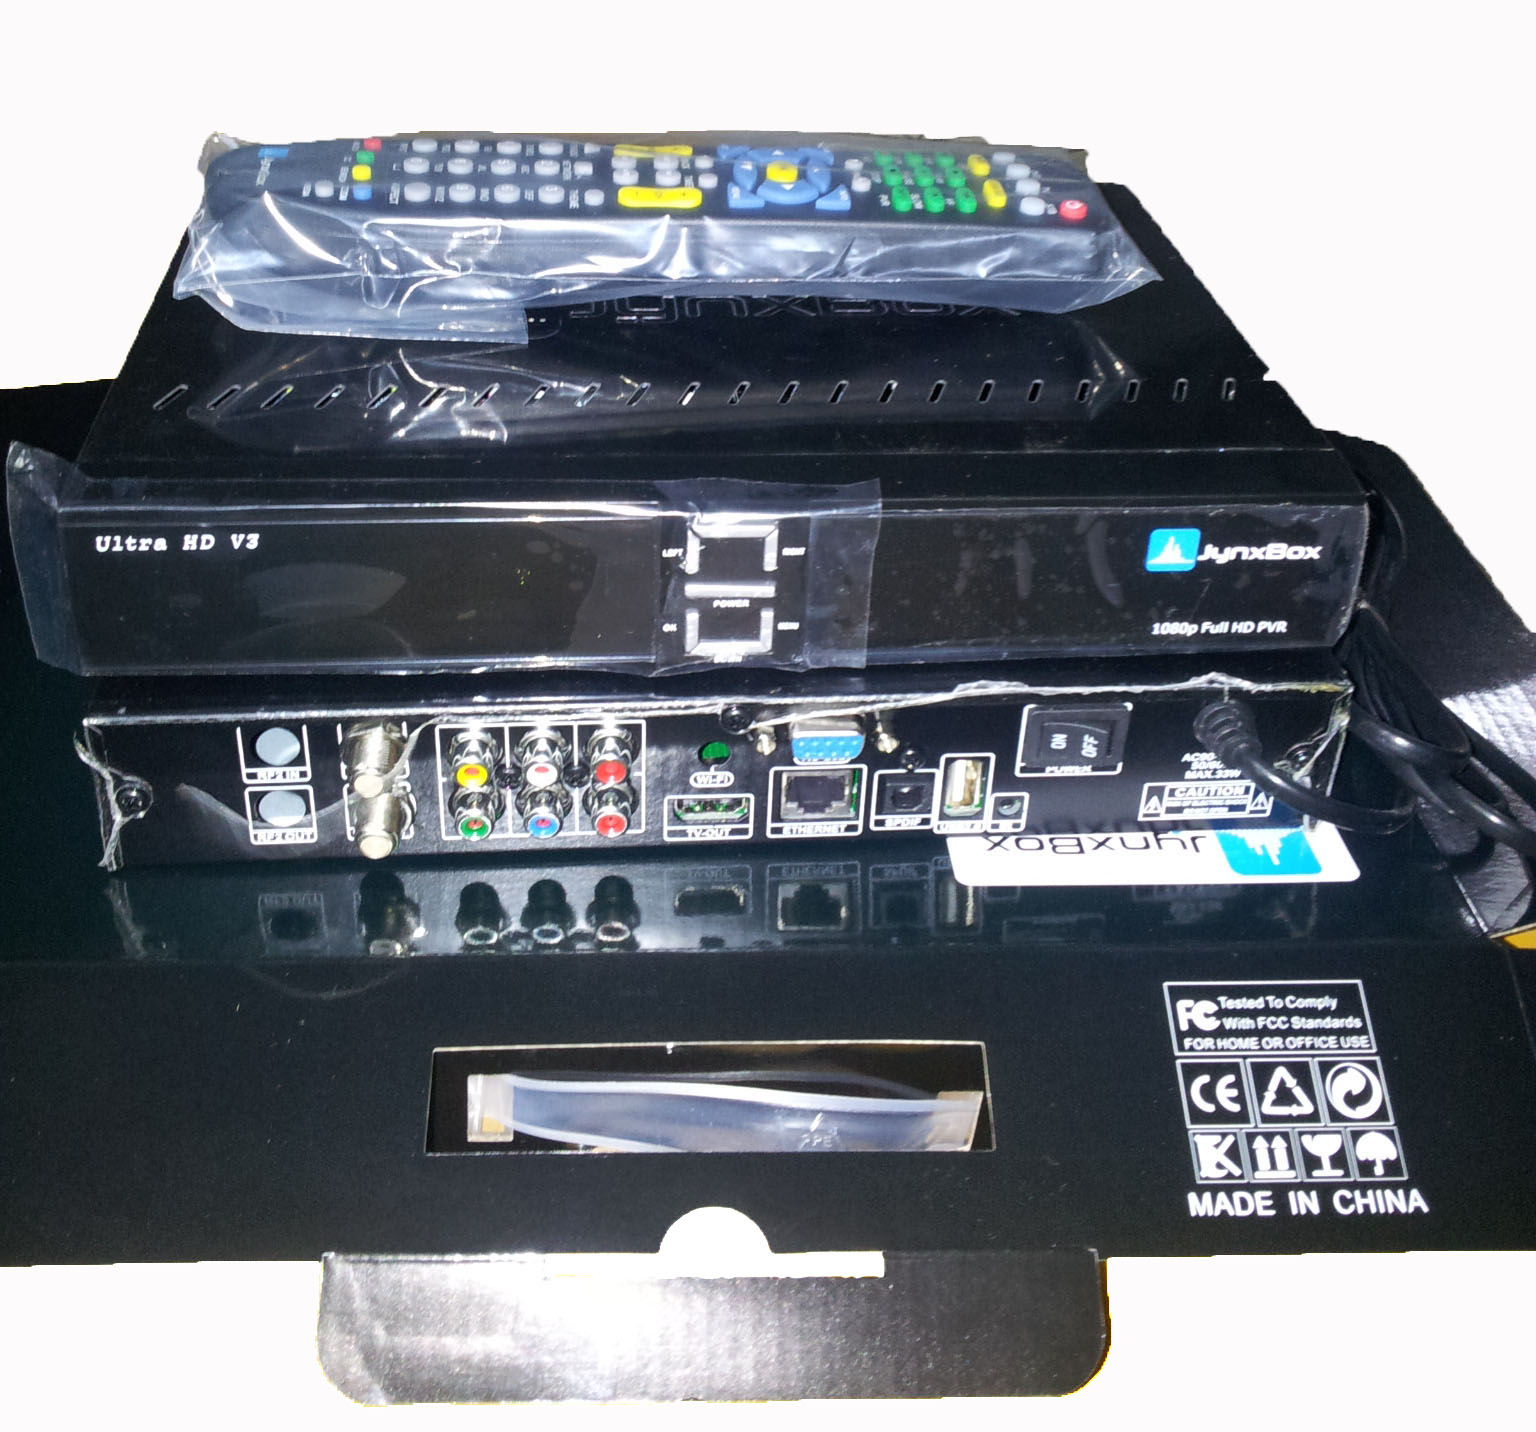 North America satellite receiver Jynxbox V3 Ultra hd with Jb200 module V3